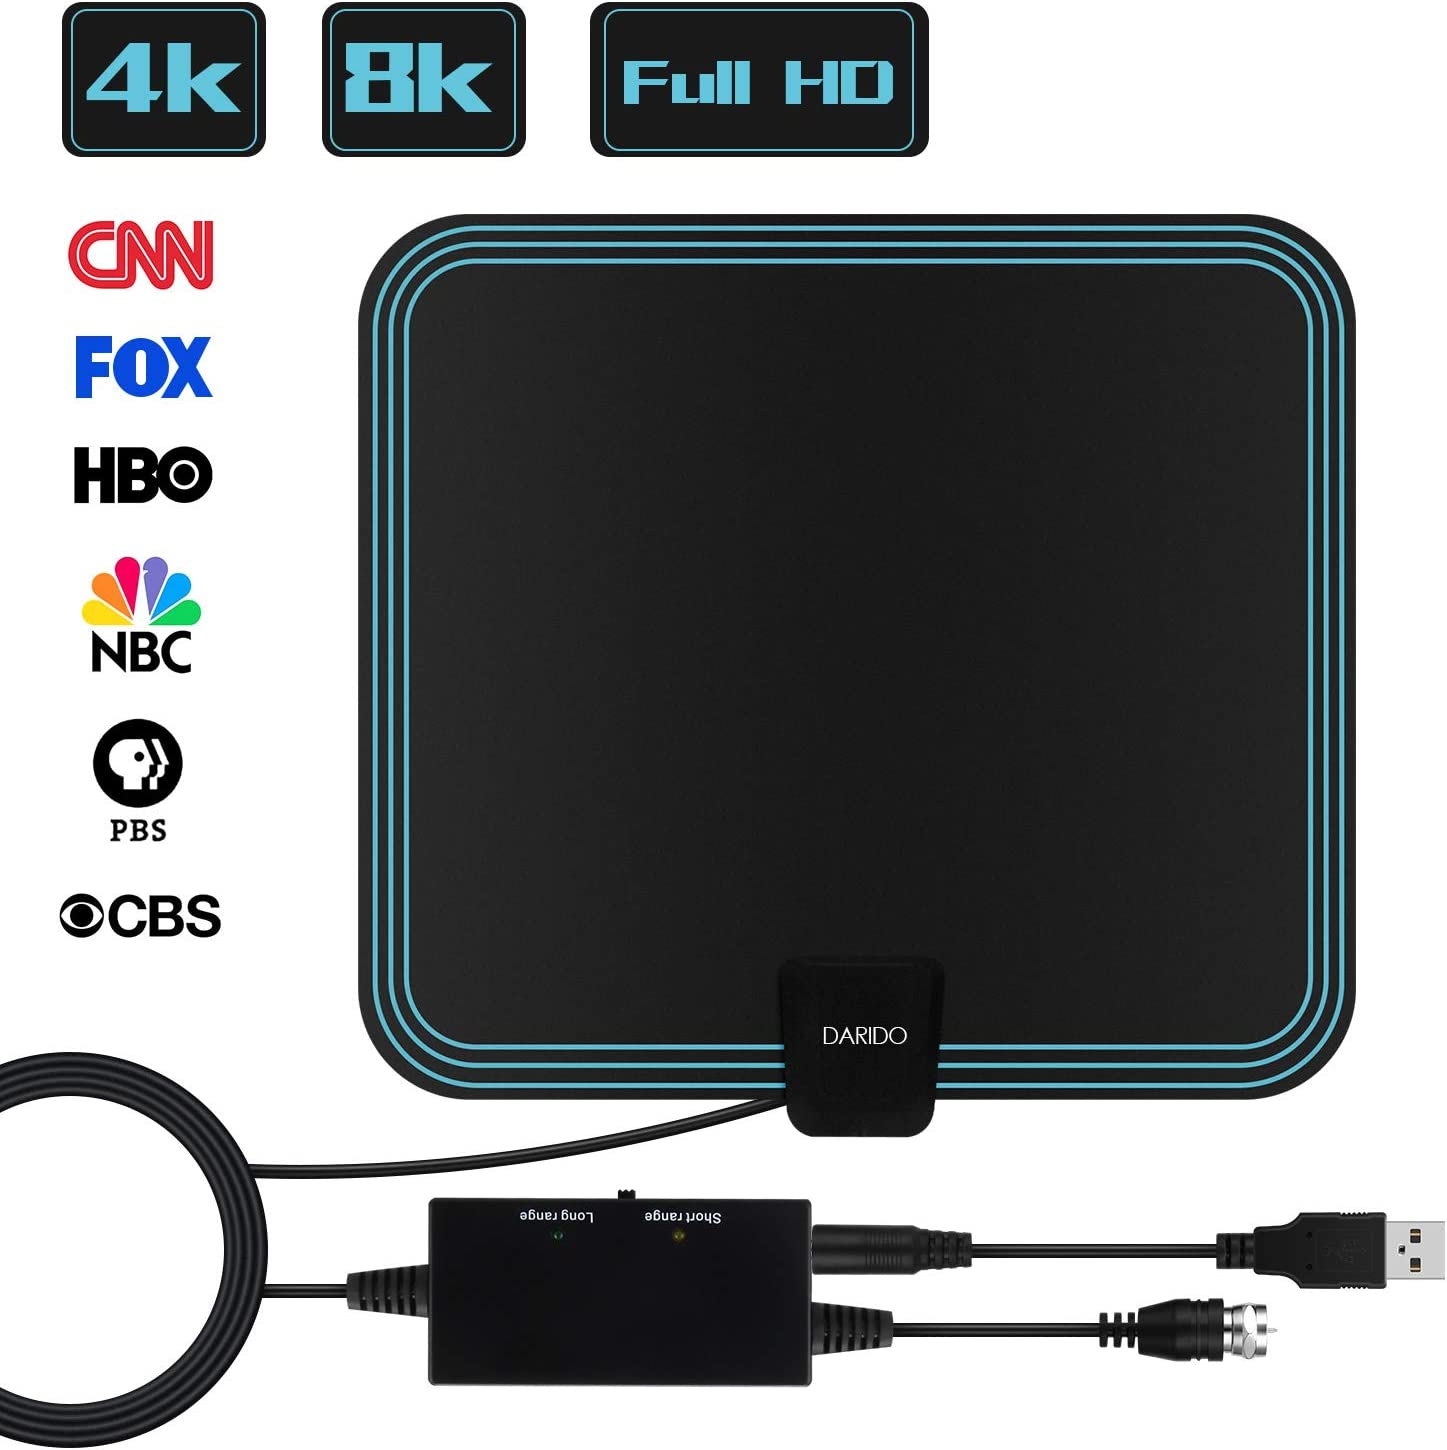 [2020 Latest] HDTV Antenna,DARIDO [4K/1080p ] Indoor Digital TV Antenna [100% Copper Coaxial Cable] 150 Miles Range with 5G Smart Chip Amplifier Signal Booster for All Televisions